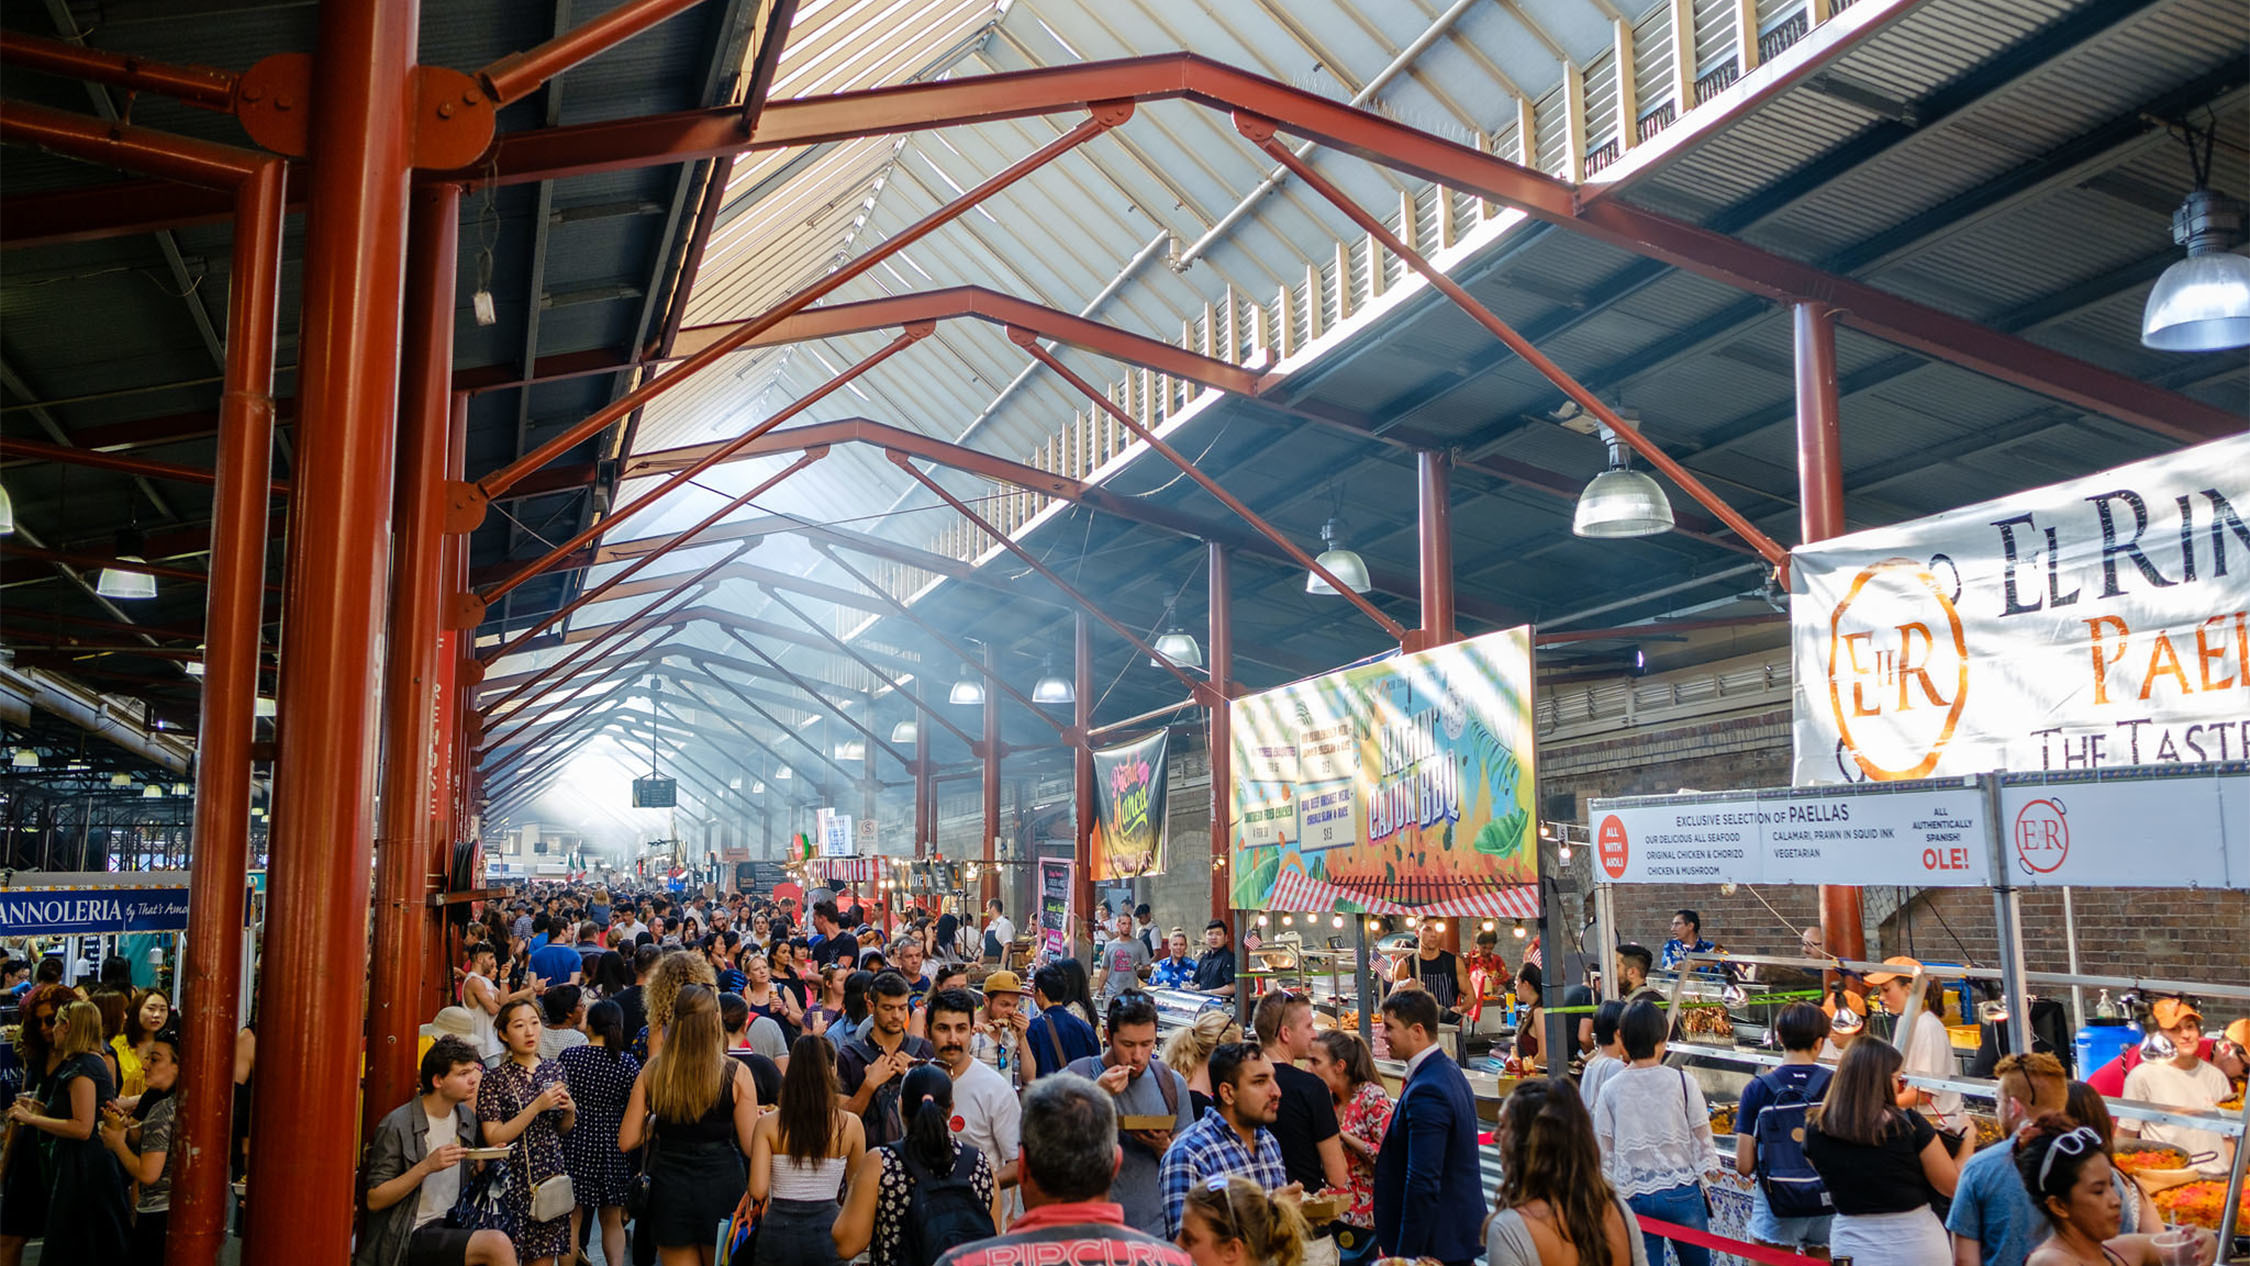 The Queen Victoria Night Market